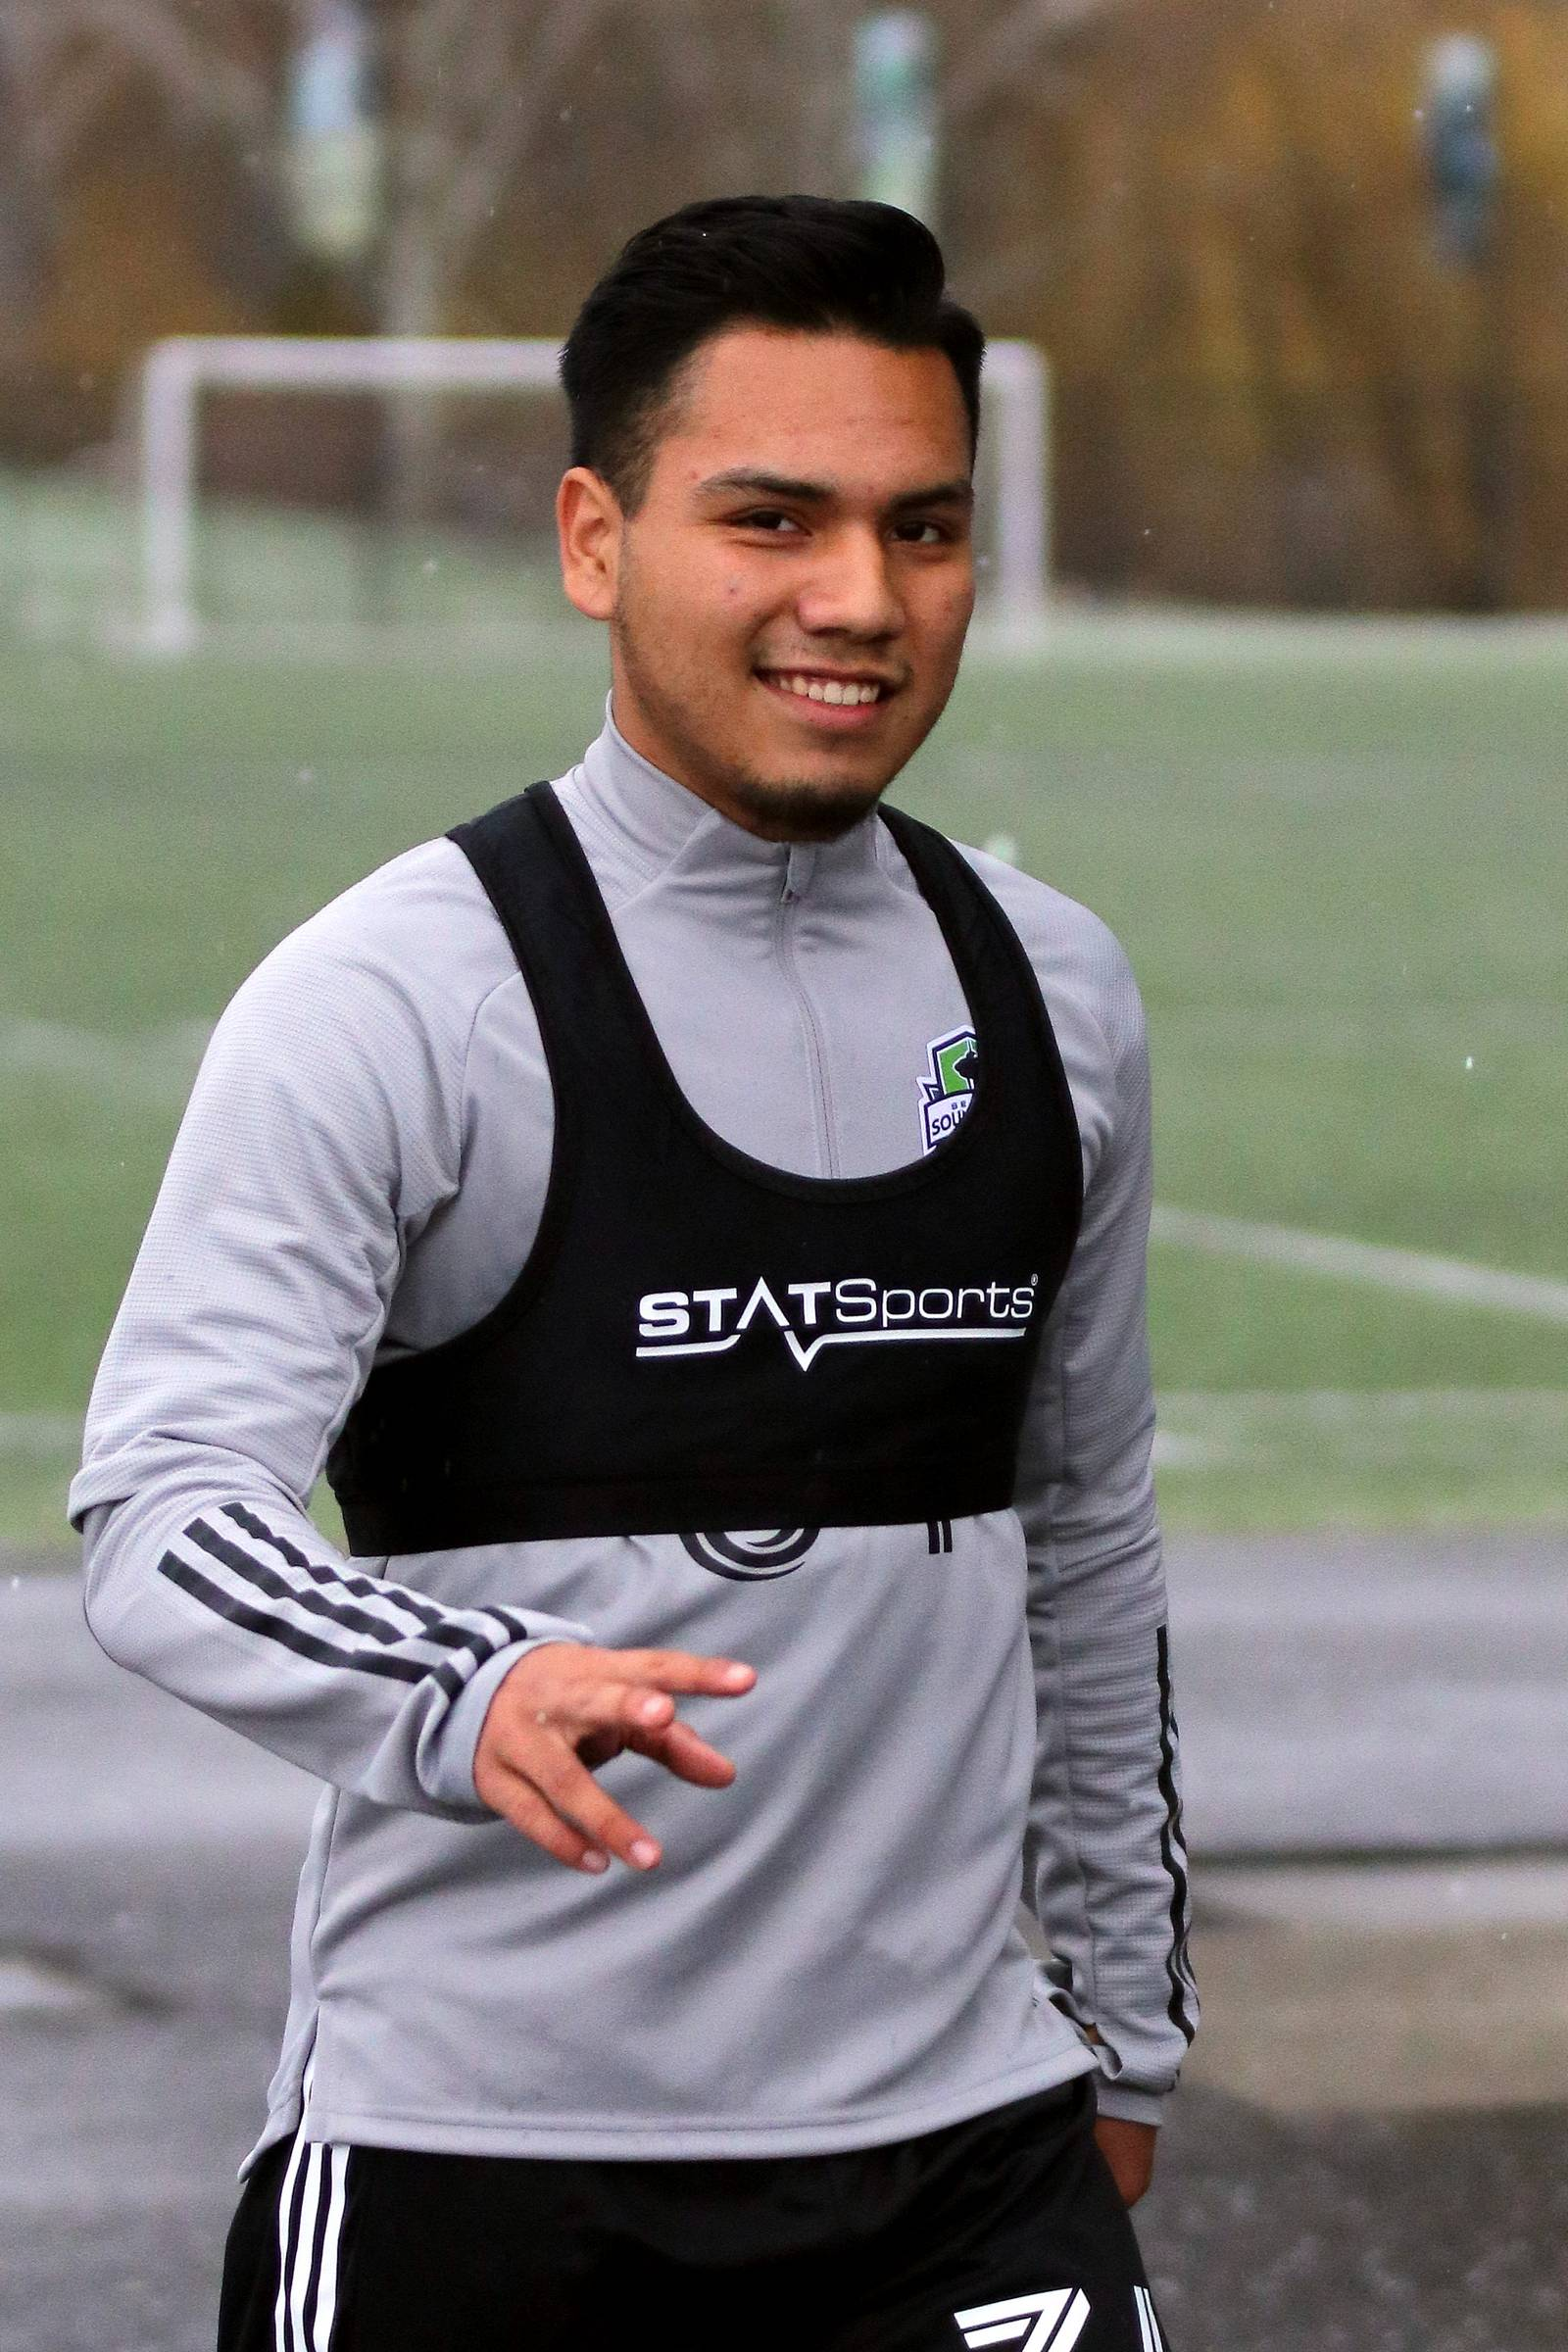 #34 Danny Robles, of Burien, plays for Sounders FC Academy